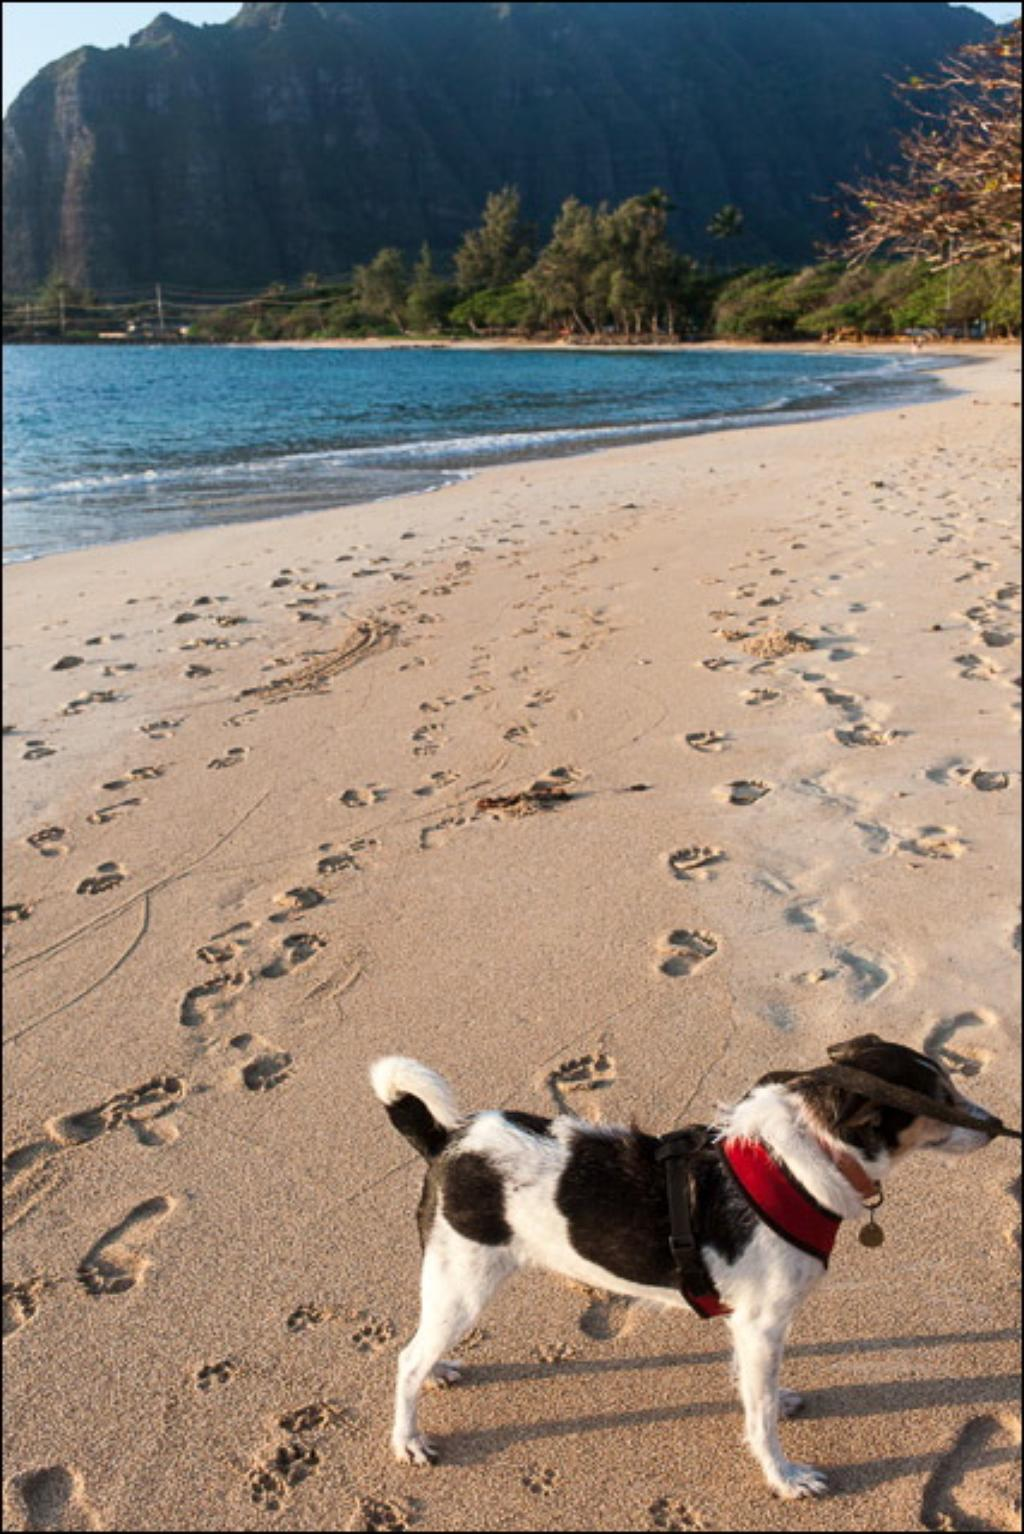 Hawaii Monitor: Leash Your Dogs, Please.